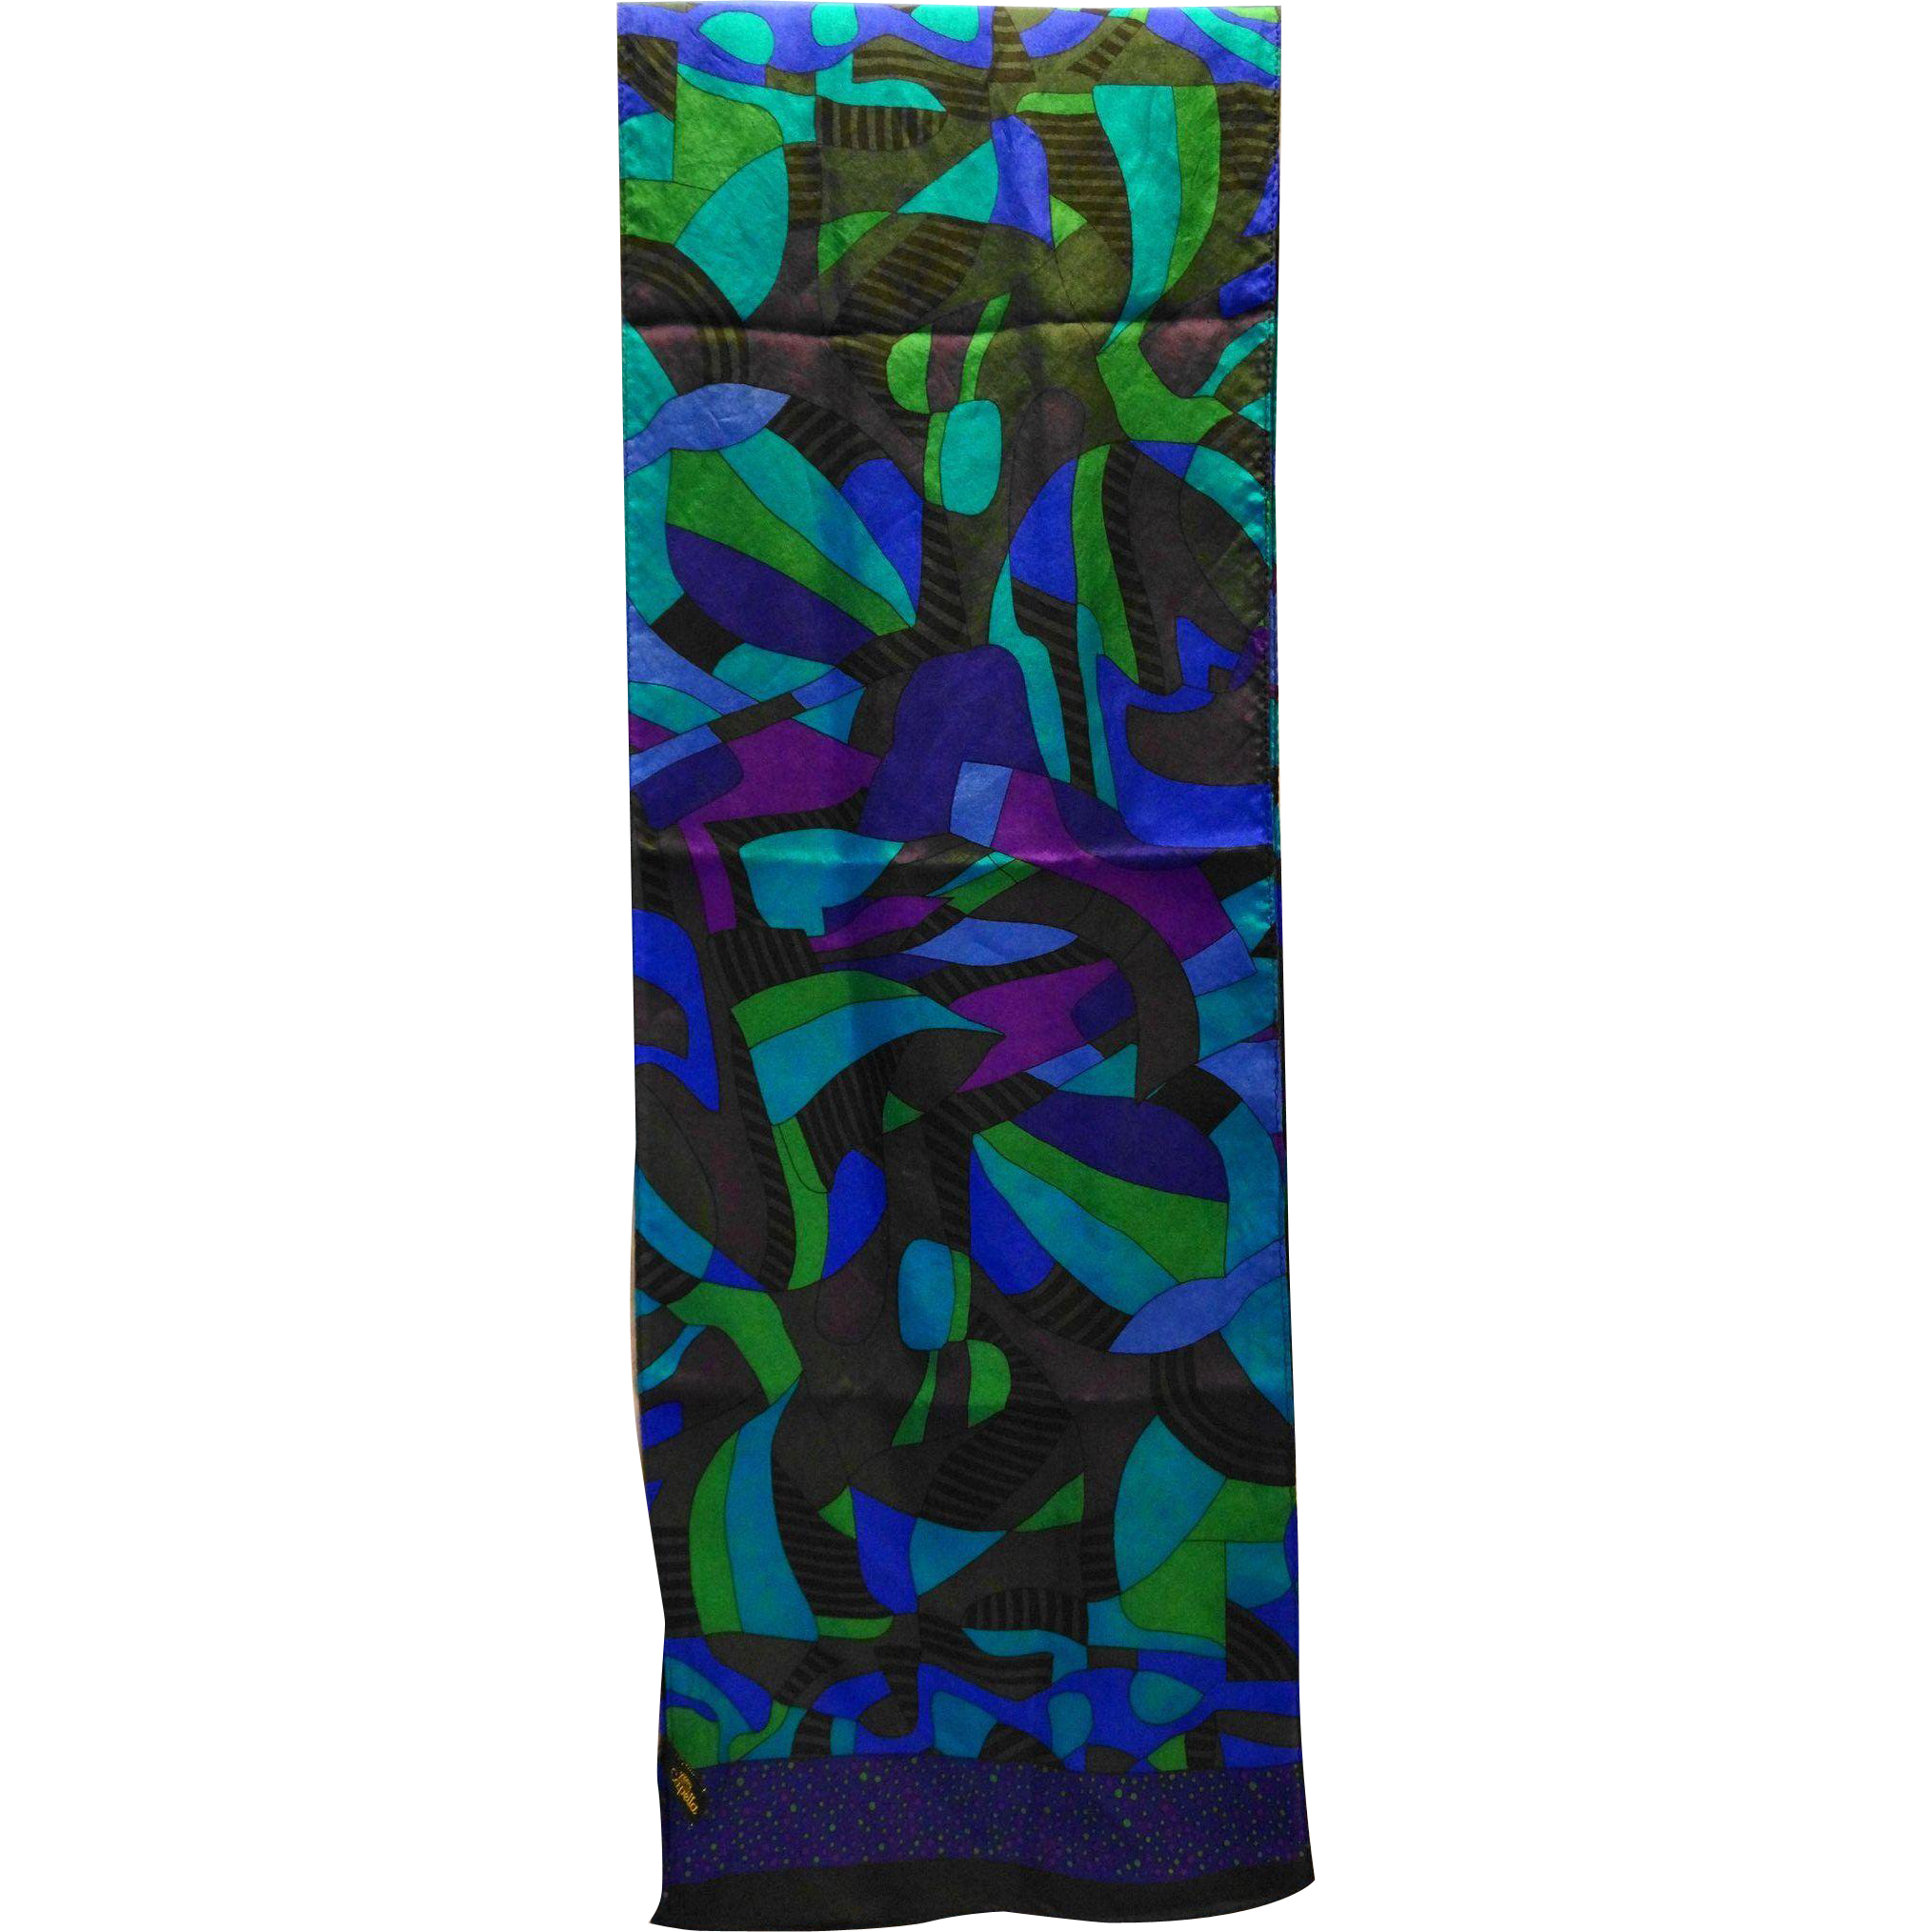 Capella Silk Scarf Oblong Purple BLue Green Jewel Tones Abstract 63 x 10